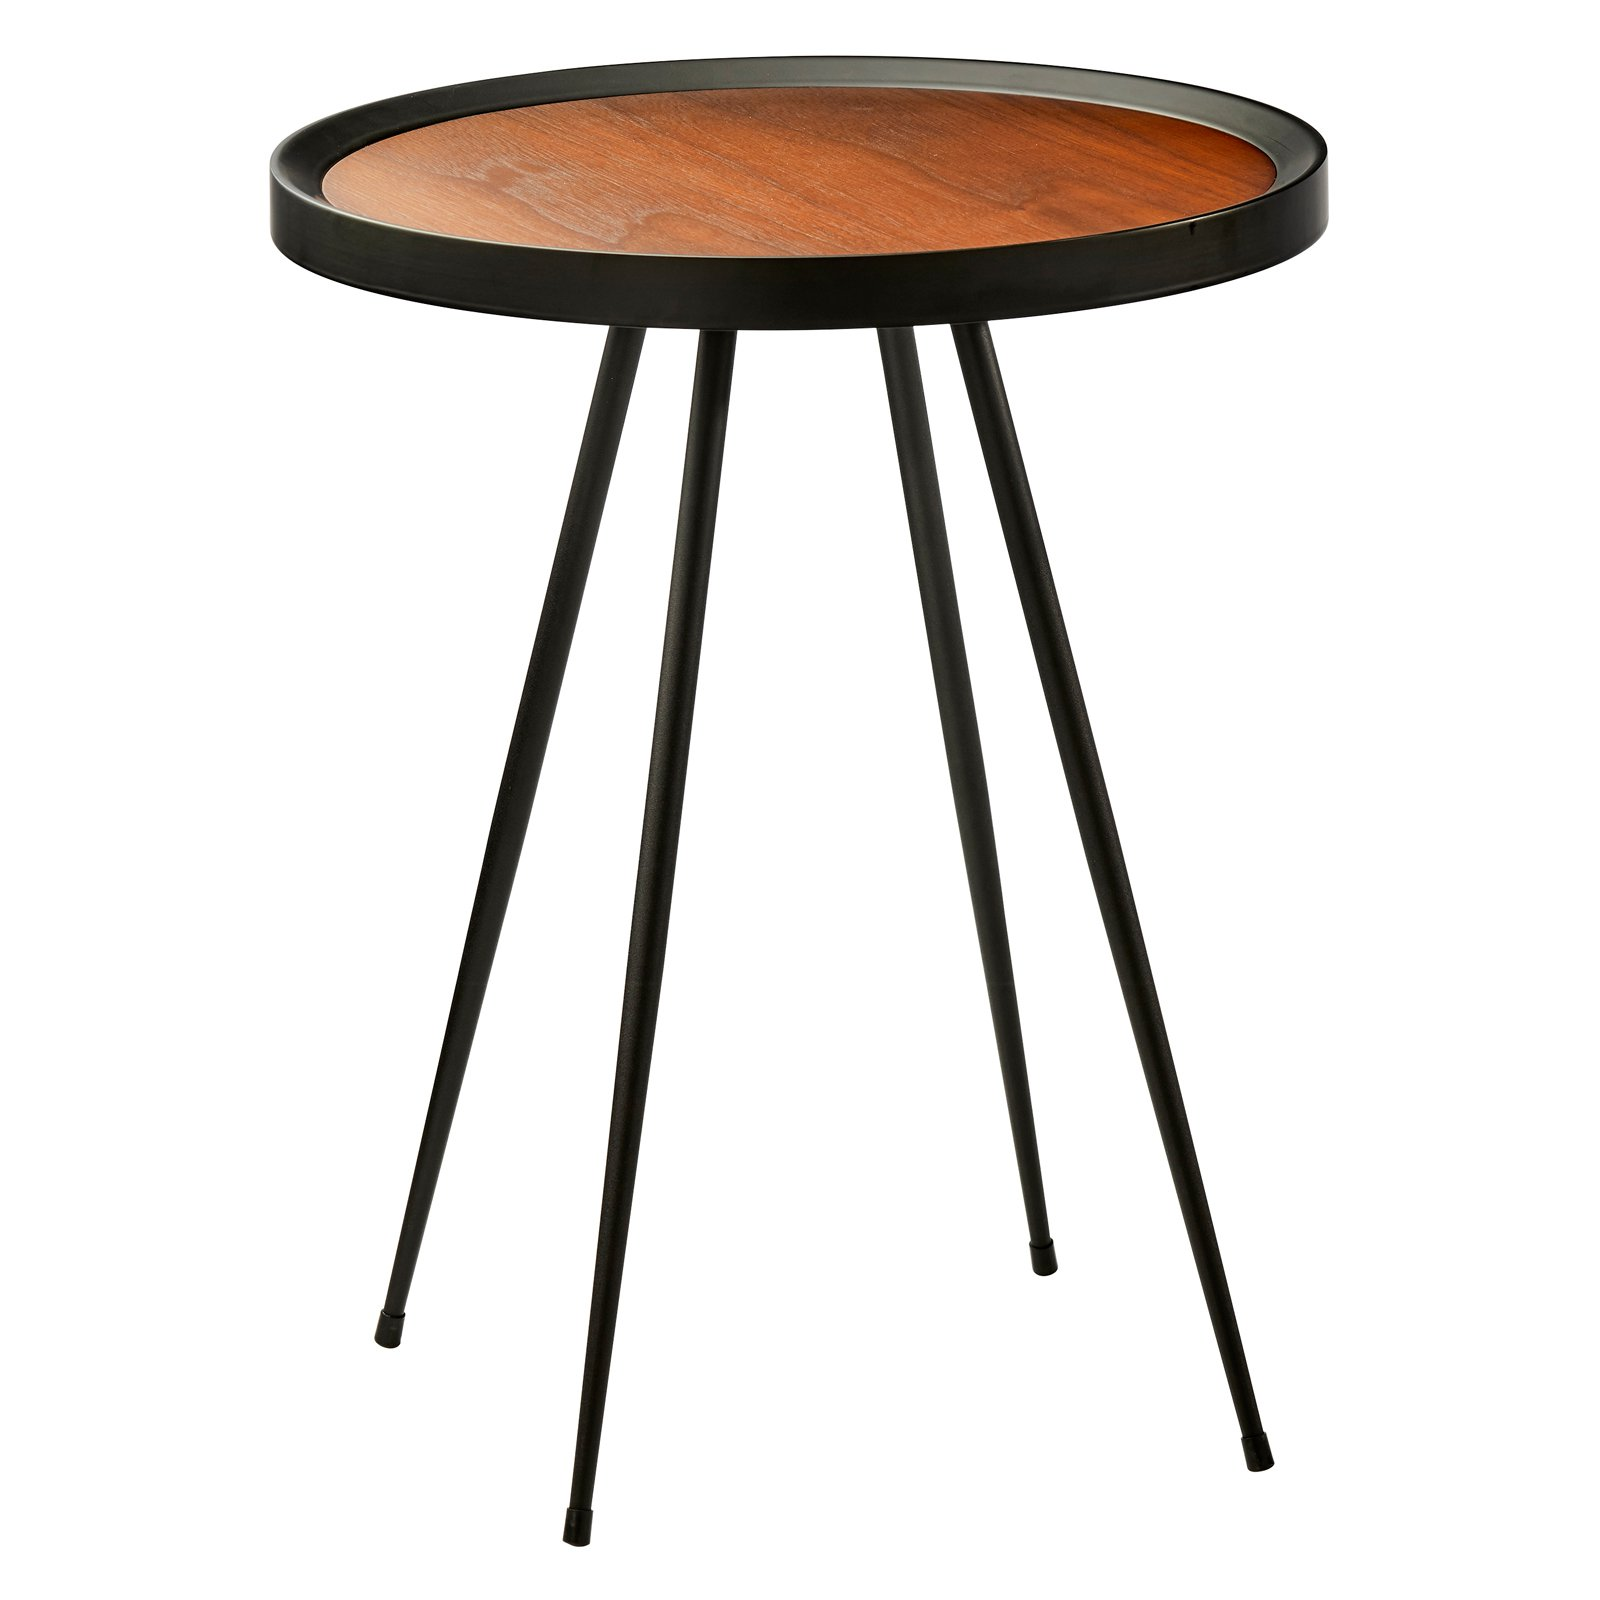 Adesso Baldwin End Table by Adesso